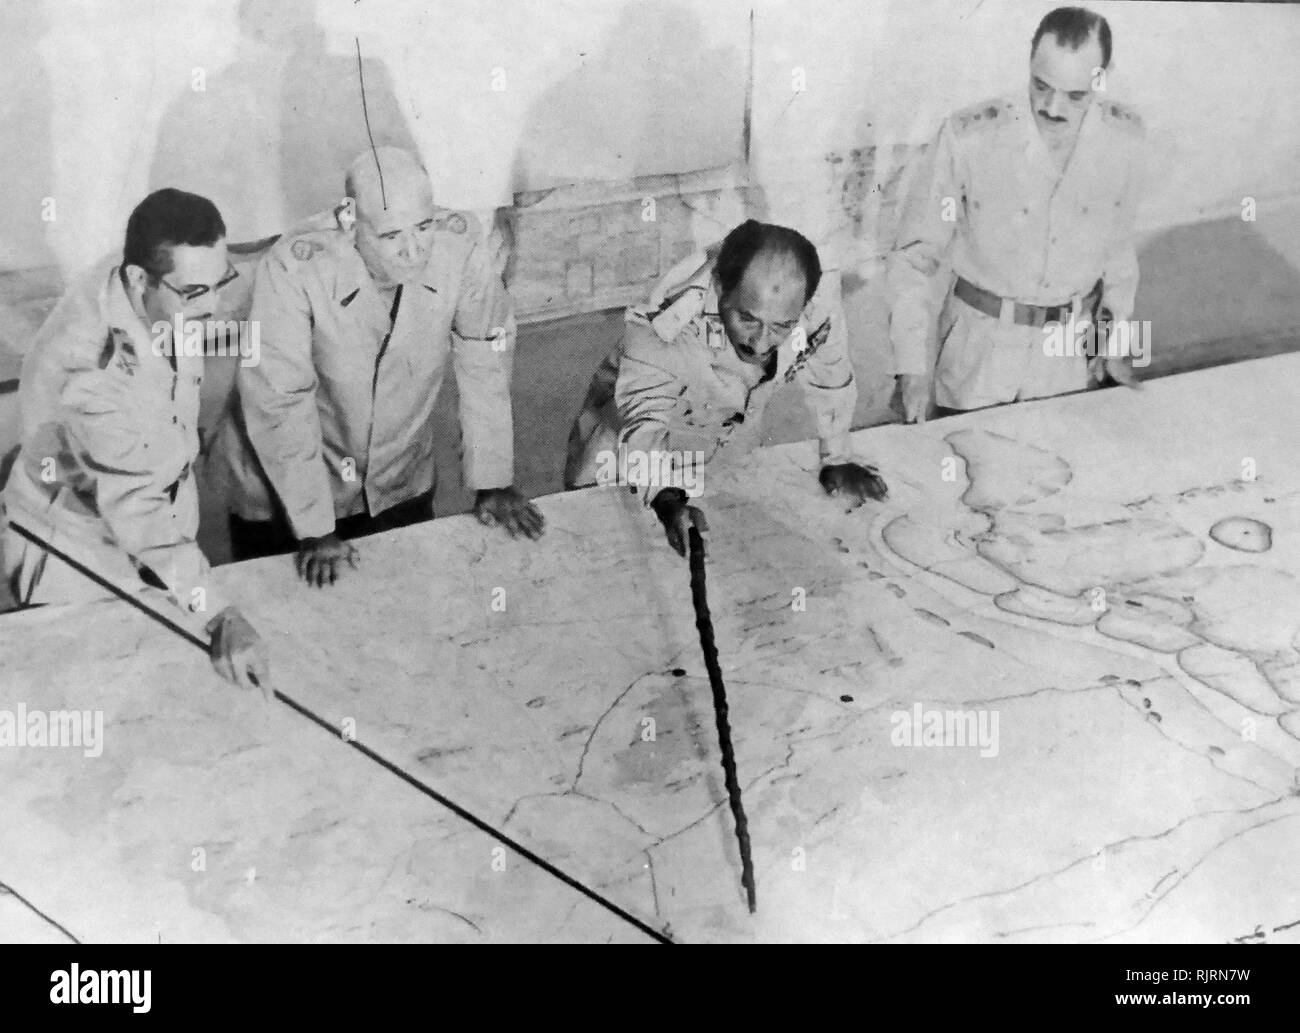 Anwar el-Sadat President of Egypt, at Military HQ during the 1973 Arab-Israeli War. He is accompanied by Field Marshall Ahmed Ismail and General Al-Gamasi. The War of 1973 (Yom Kippur War, Ramadan War, or October War), was fought from October 6 to 25, 1973, by a coalition of Arab states led by Egypt and Syria against Israel. - Stock Image